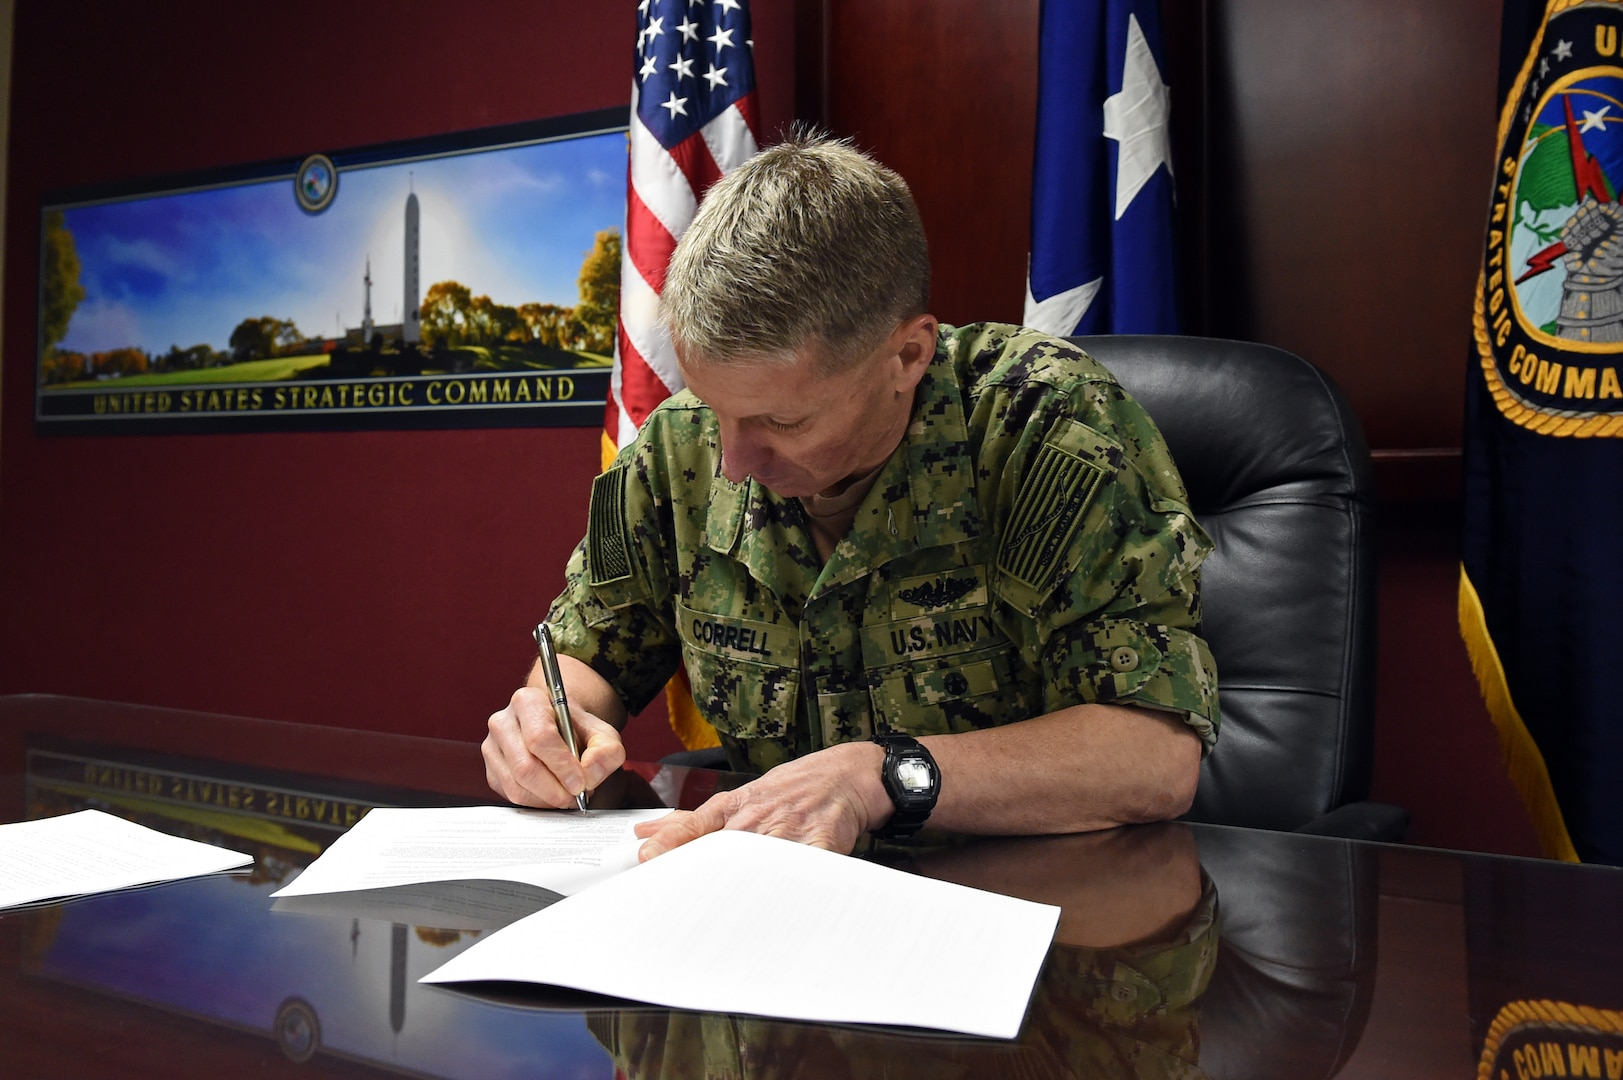 Rear Adm. Richard Correll, U.S. Strategic Command director of plans and policy, signs the United States-Romania Space Situational Awareness (SSA) agreement at USSTRATCOM Headquarters at Offutt Air Force Base, Neb., on April 4, 2019. SSA data-sharing agreements enhance multinational space cooperation and streamline the process for USSTRATCOM partners to request specific information gathered by USSTRATCOM's Joint Space Operations Center at Vandenberg Air Force Base, Calif. The information is crucial for launch support, satellite maneuver planning, support for on-orbit anomalies, electromagnetic interference reporting and investigation, satellite decommissioning activities and on-orbit conjunction assessments.